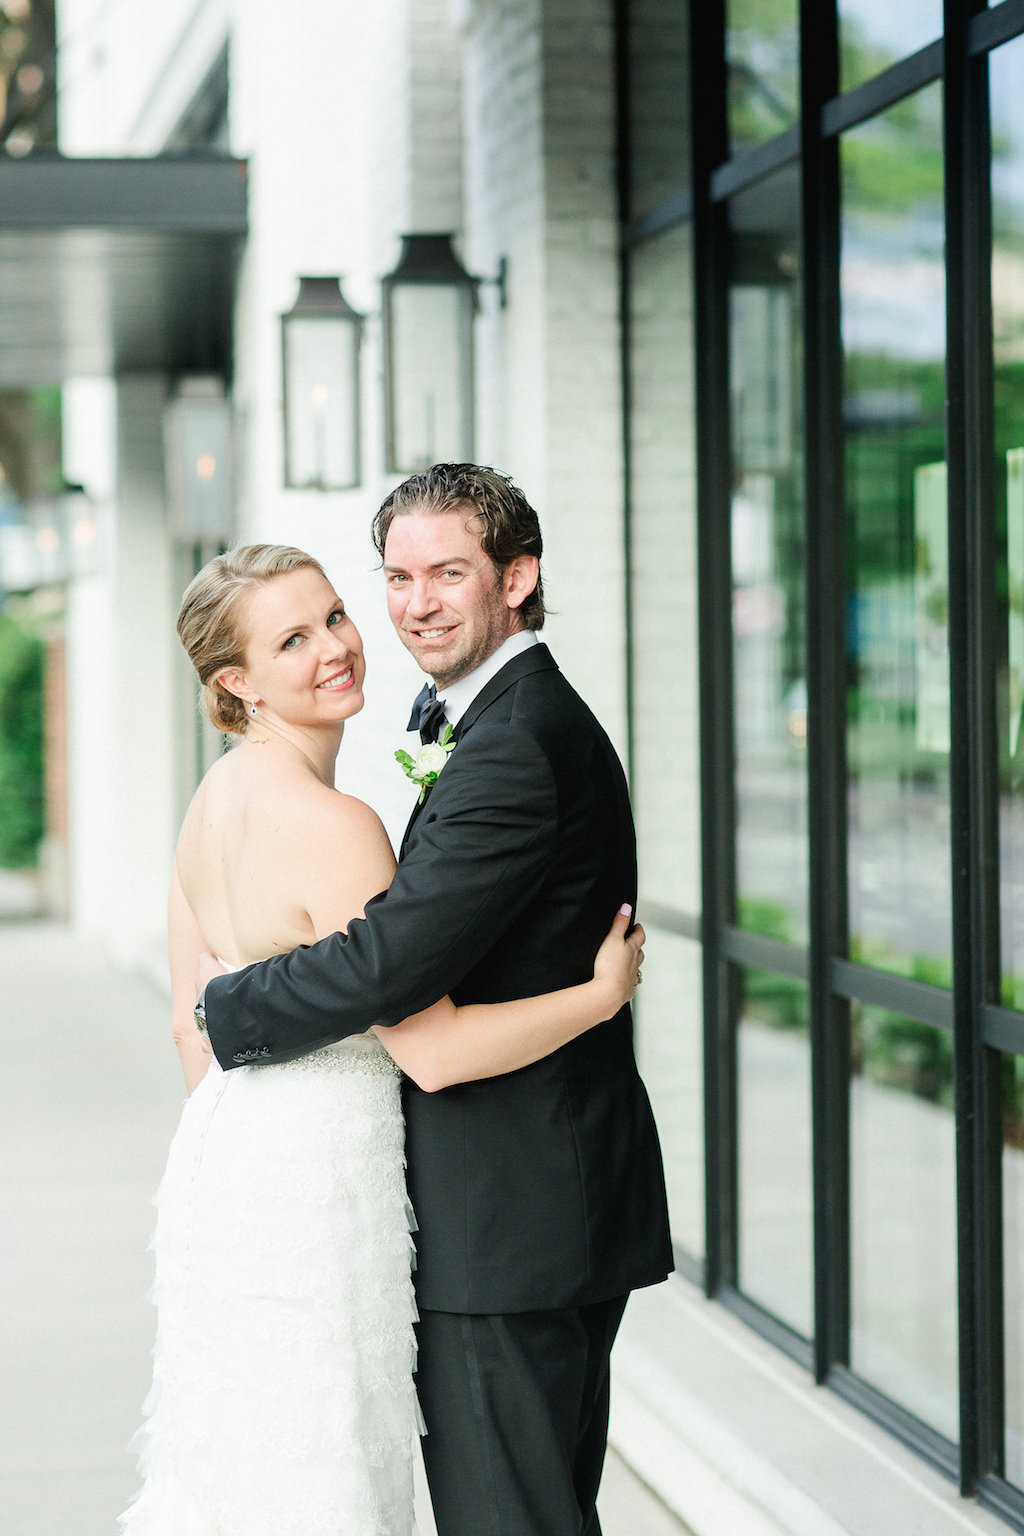 Outdoor Urban Street Bride and Groom Portrait   Tampa Wedding Photographer Ailyn La Torre Photography